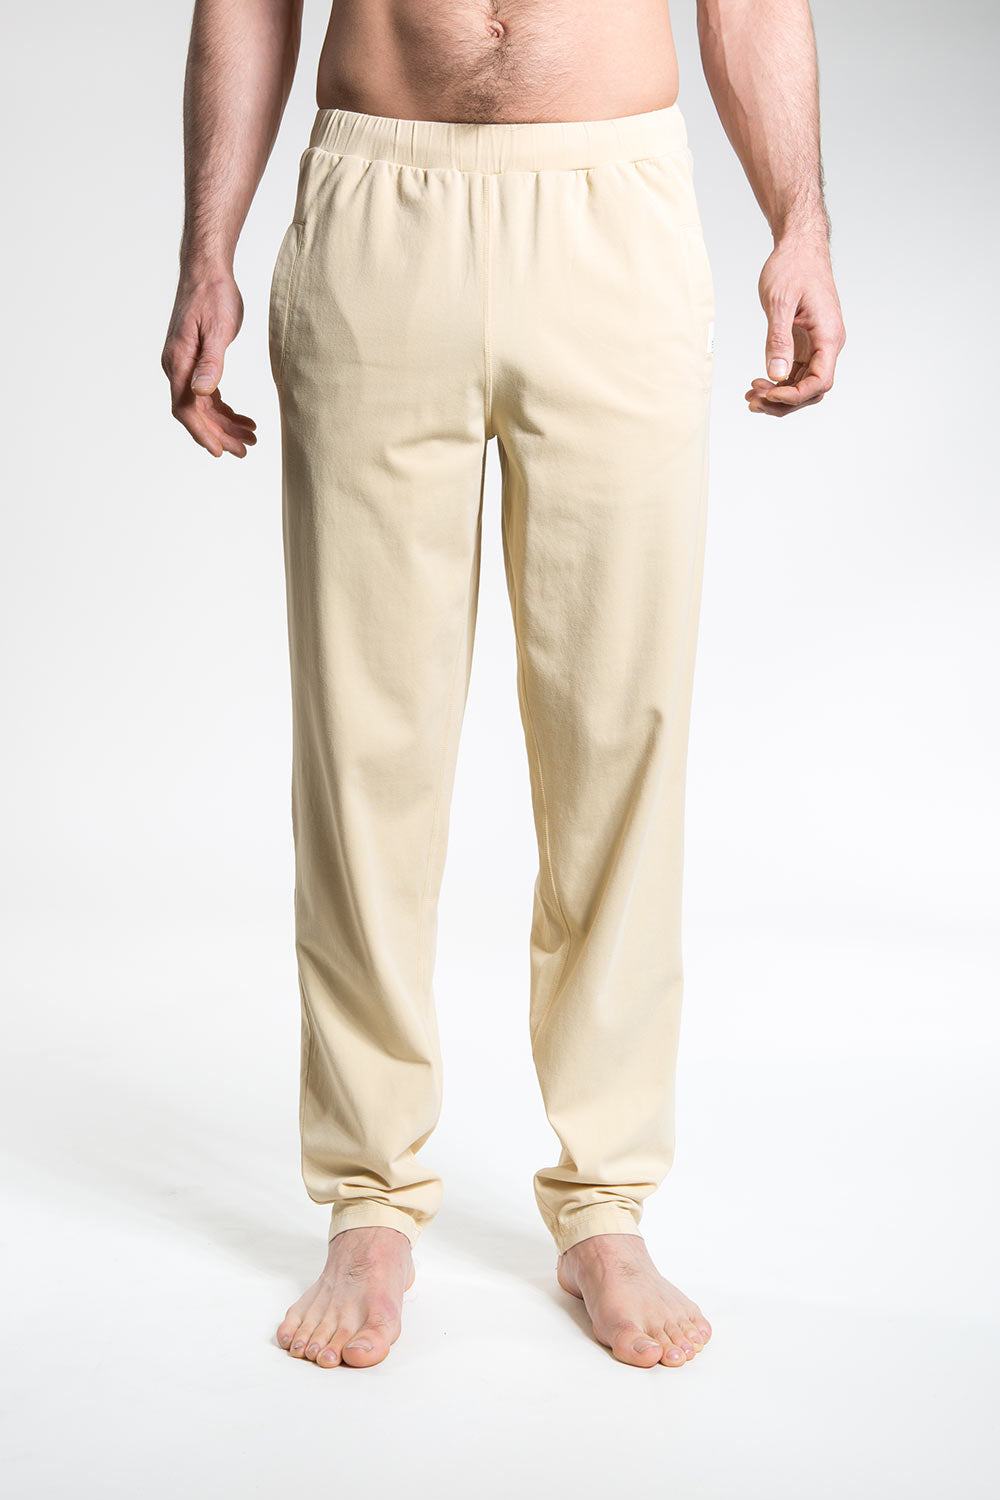 so we flow... mens sand organic cotton yoga and climbing pants front view